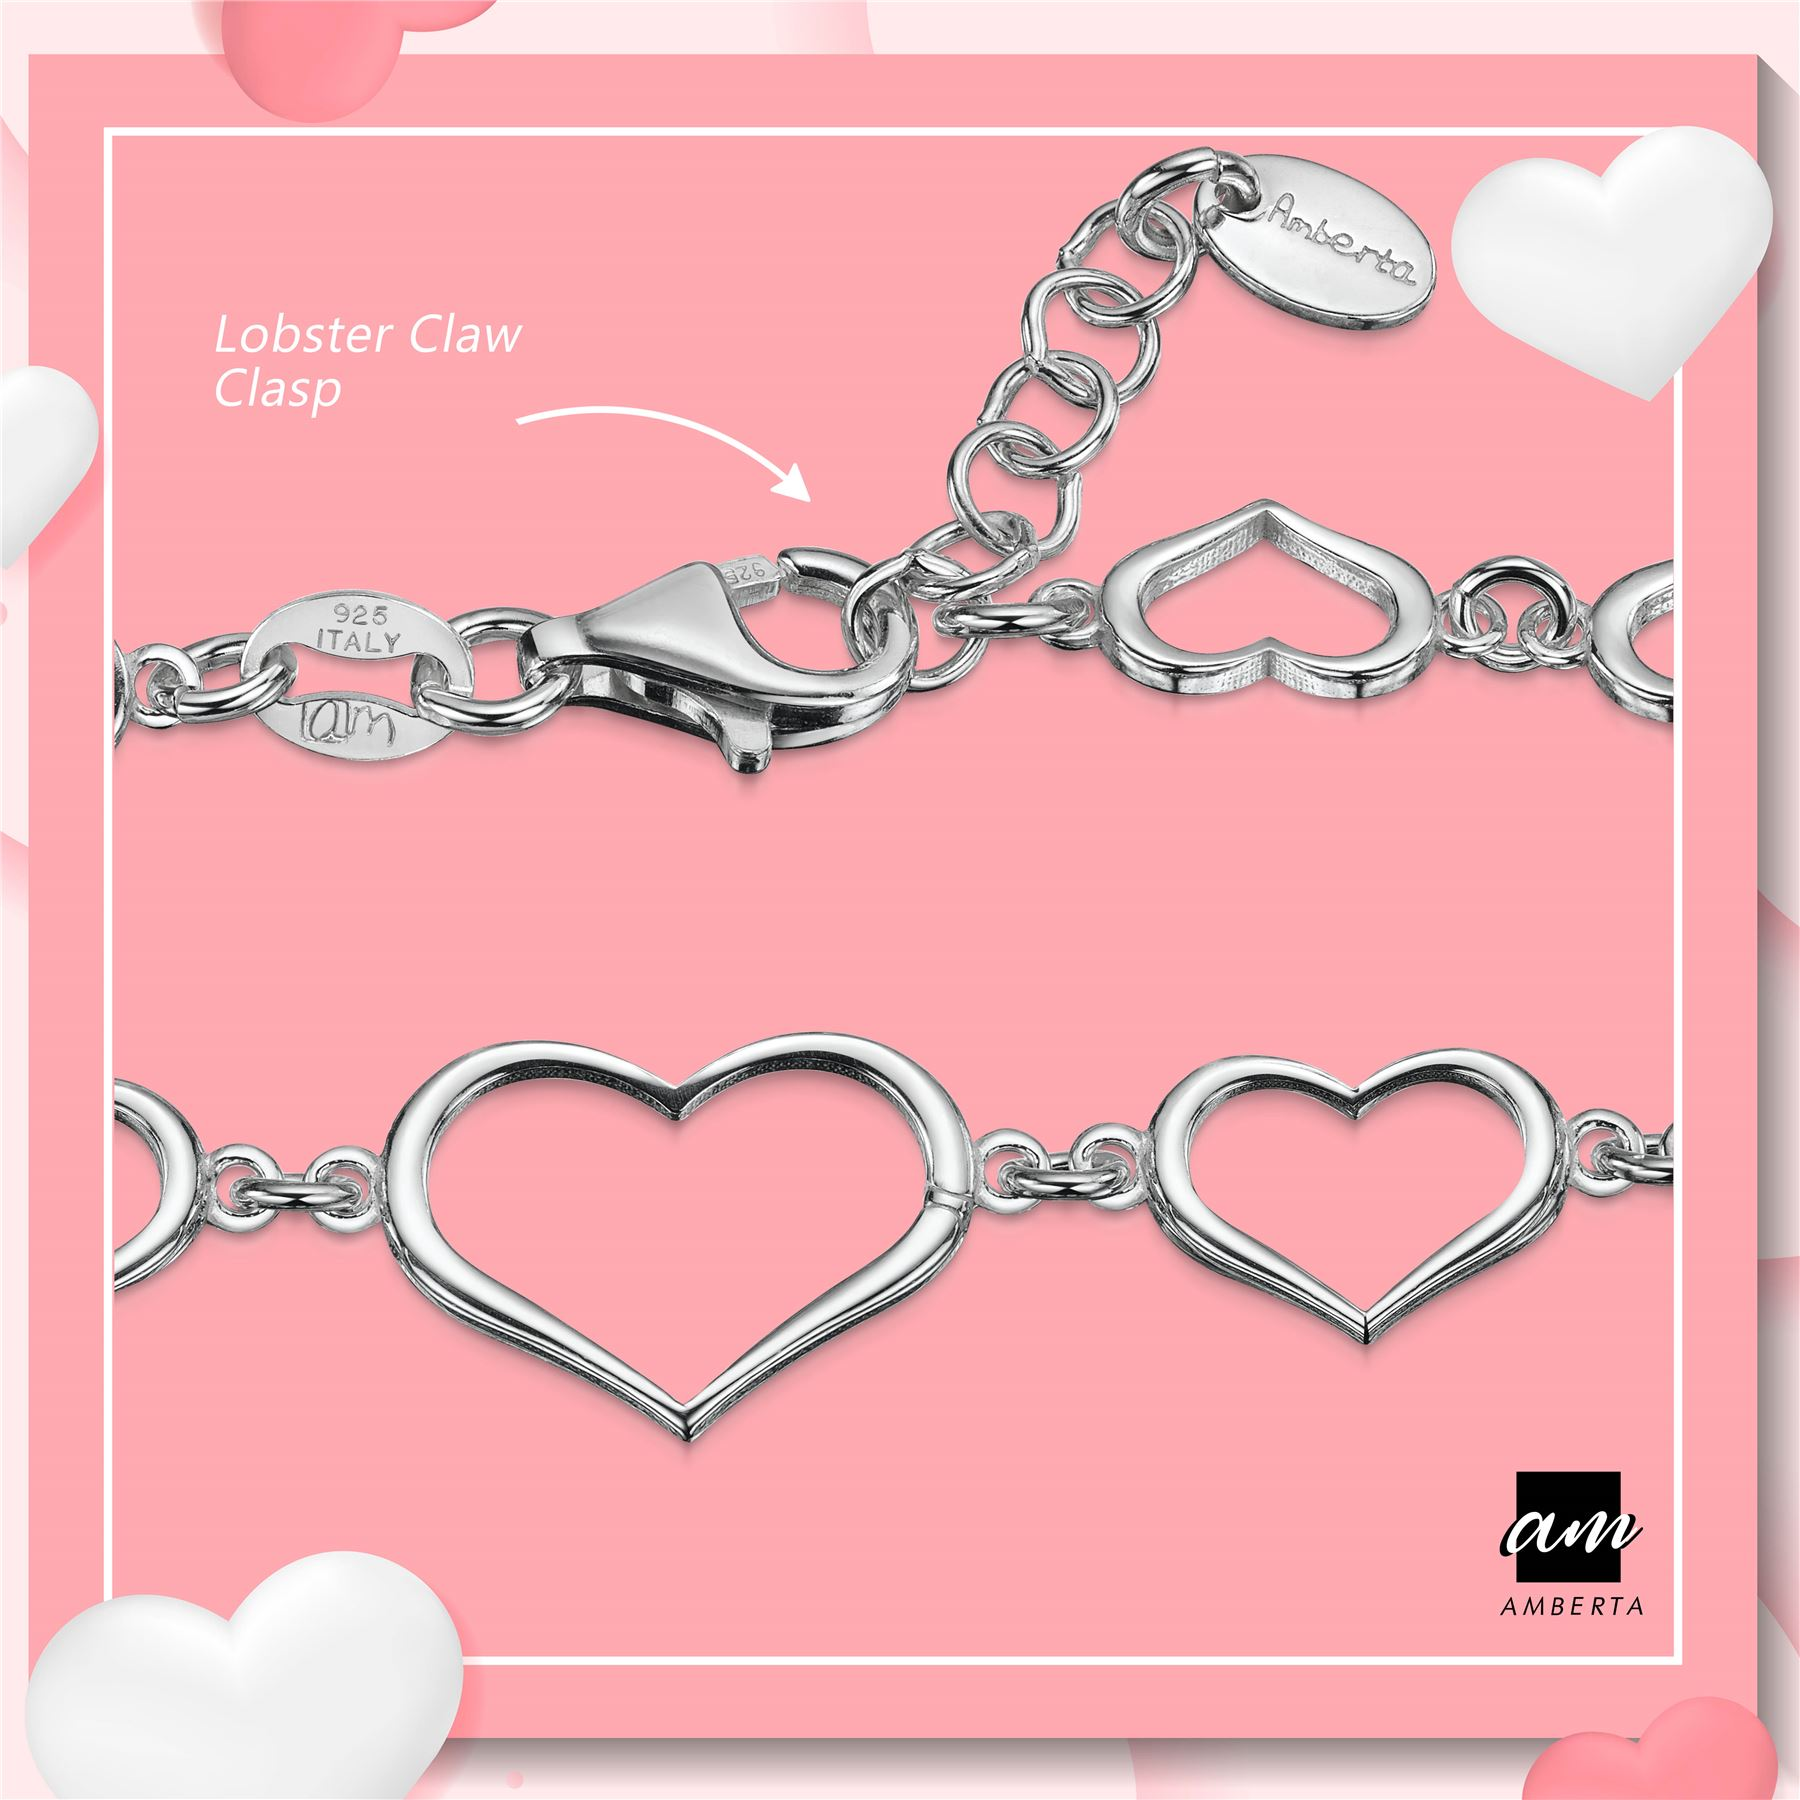 Amberta-925-Sterling-Silver-Adjustable-Rolo-Chain-Bracelet-with-Charms-for-Women miniature 18